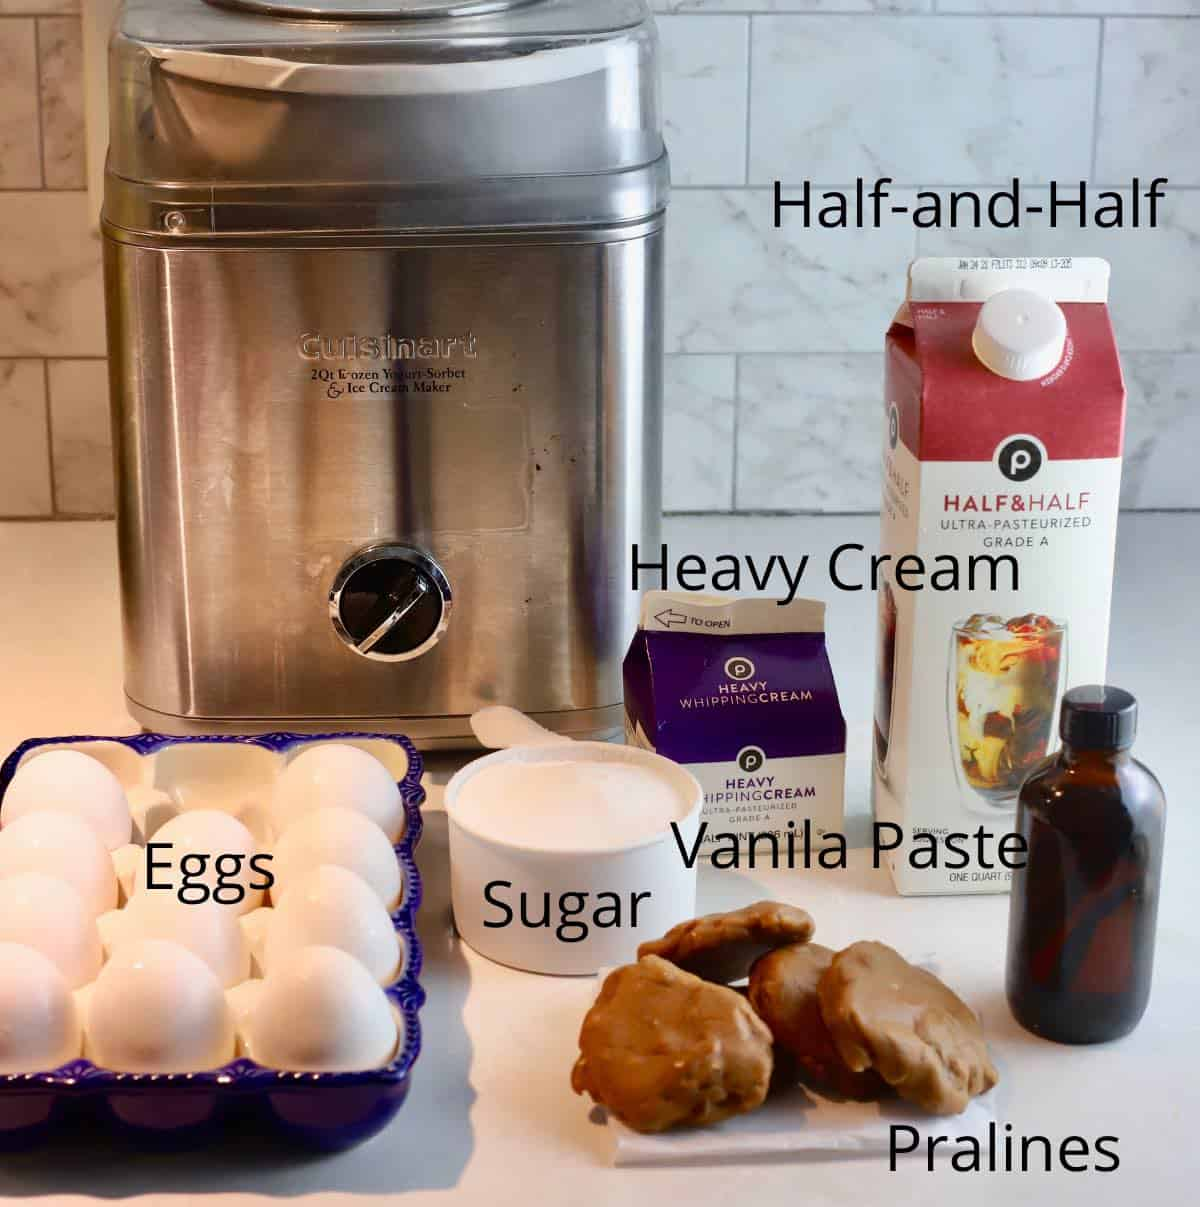 An ice cream maker and ingredients on a kitchen counter.